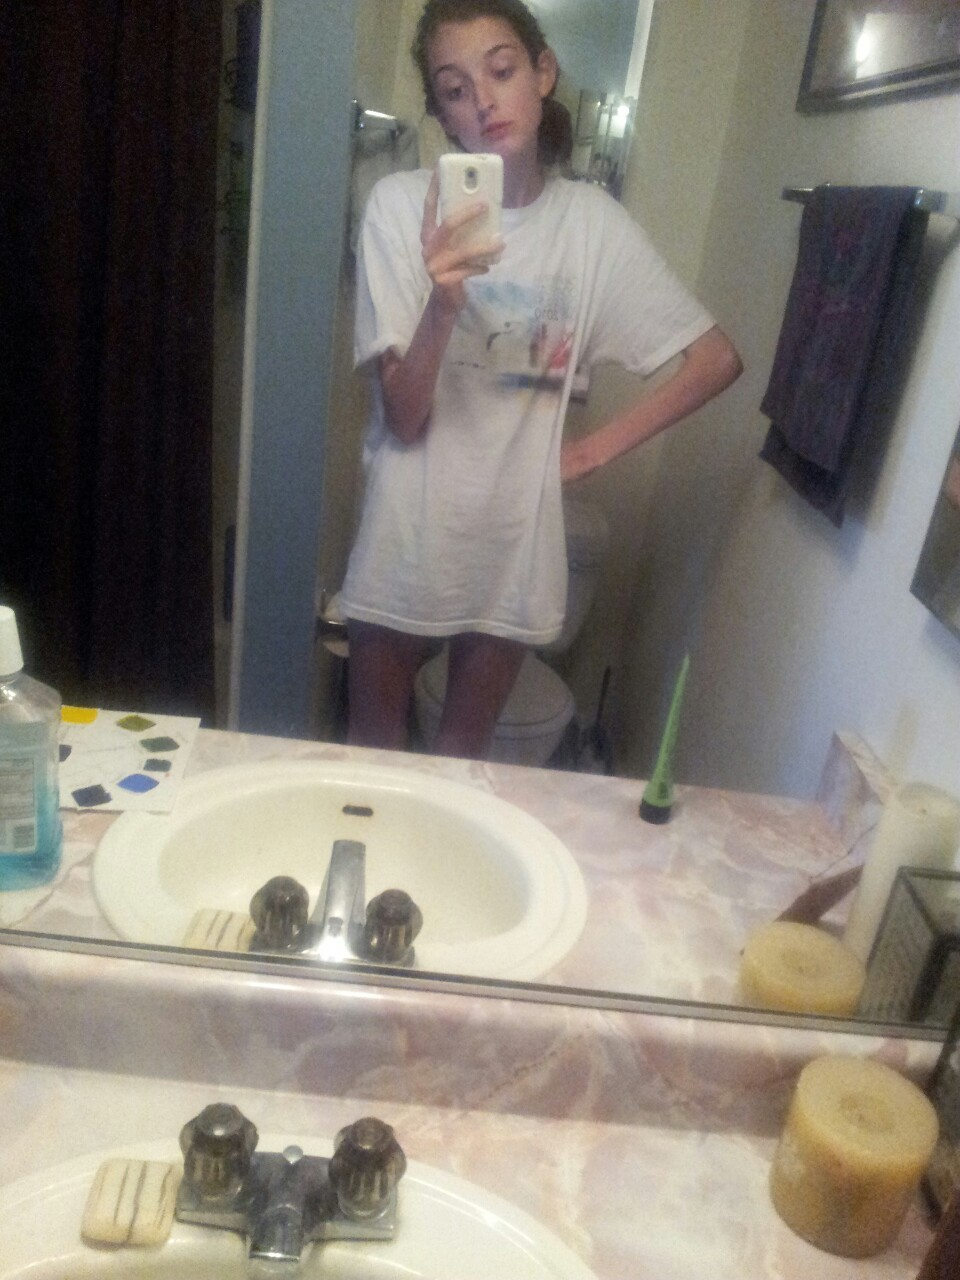 hangin out w/ no pants wbu